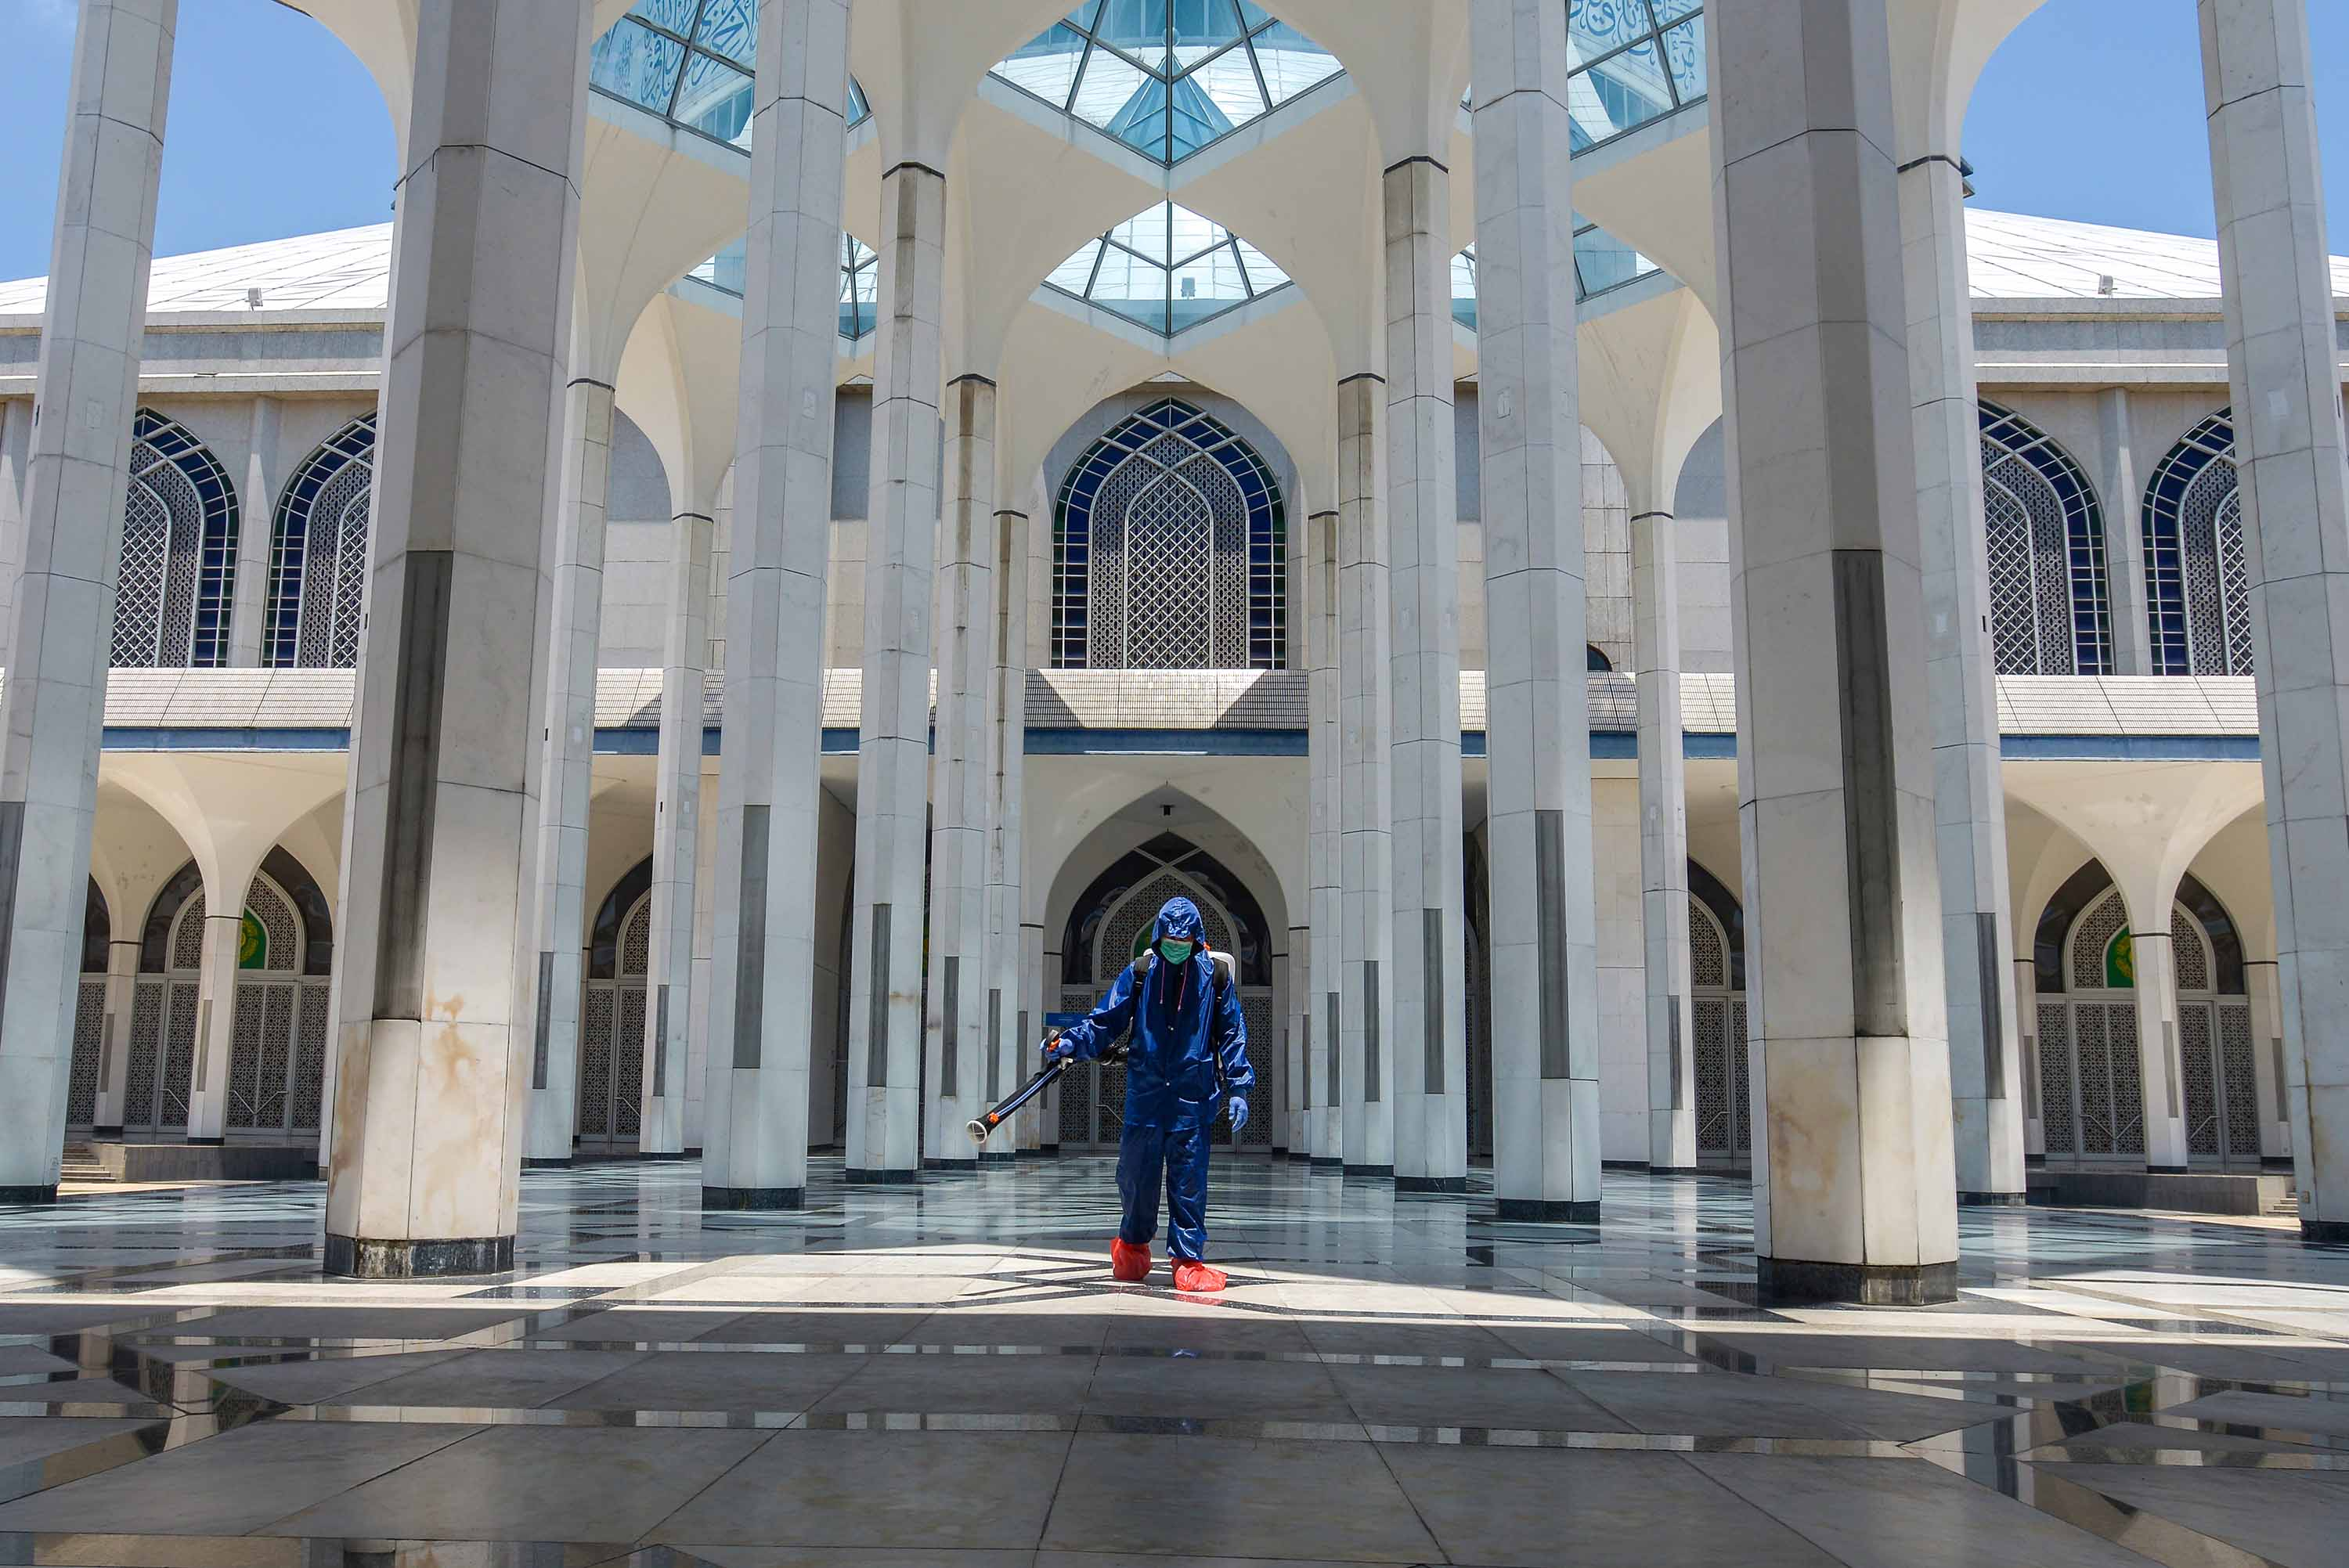 A worker sprays disinfectant at a mosque in Shah Alam, Malaysia on March 26.